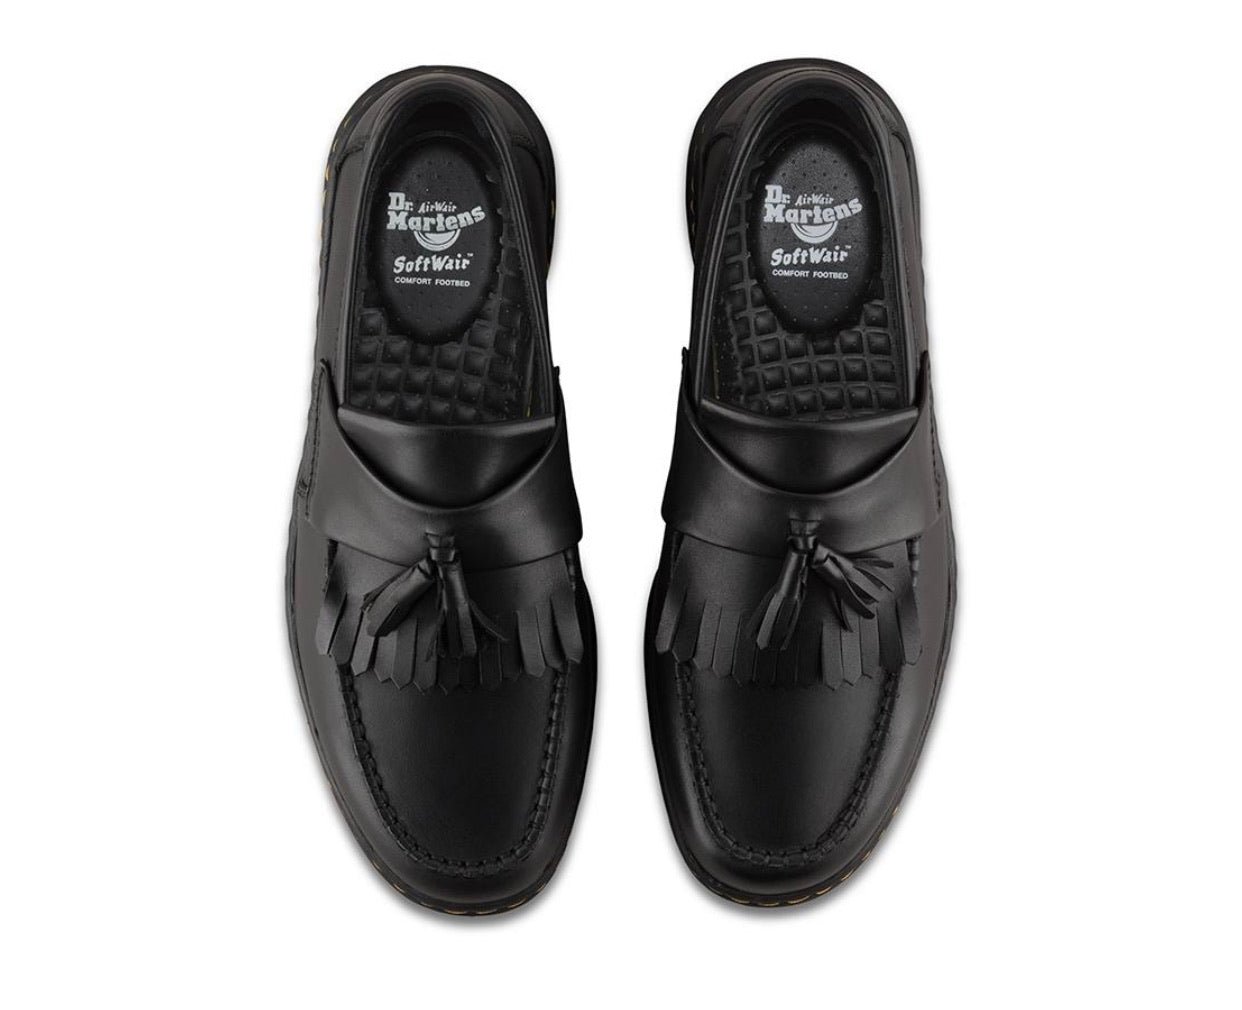 Dr. Martens Edison Black Temperley Leather Shoe